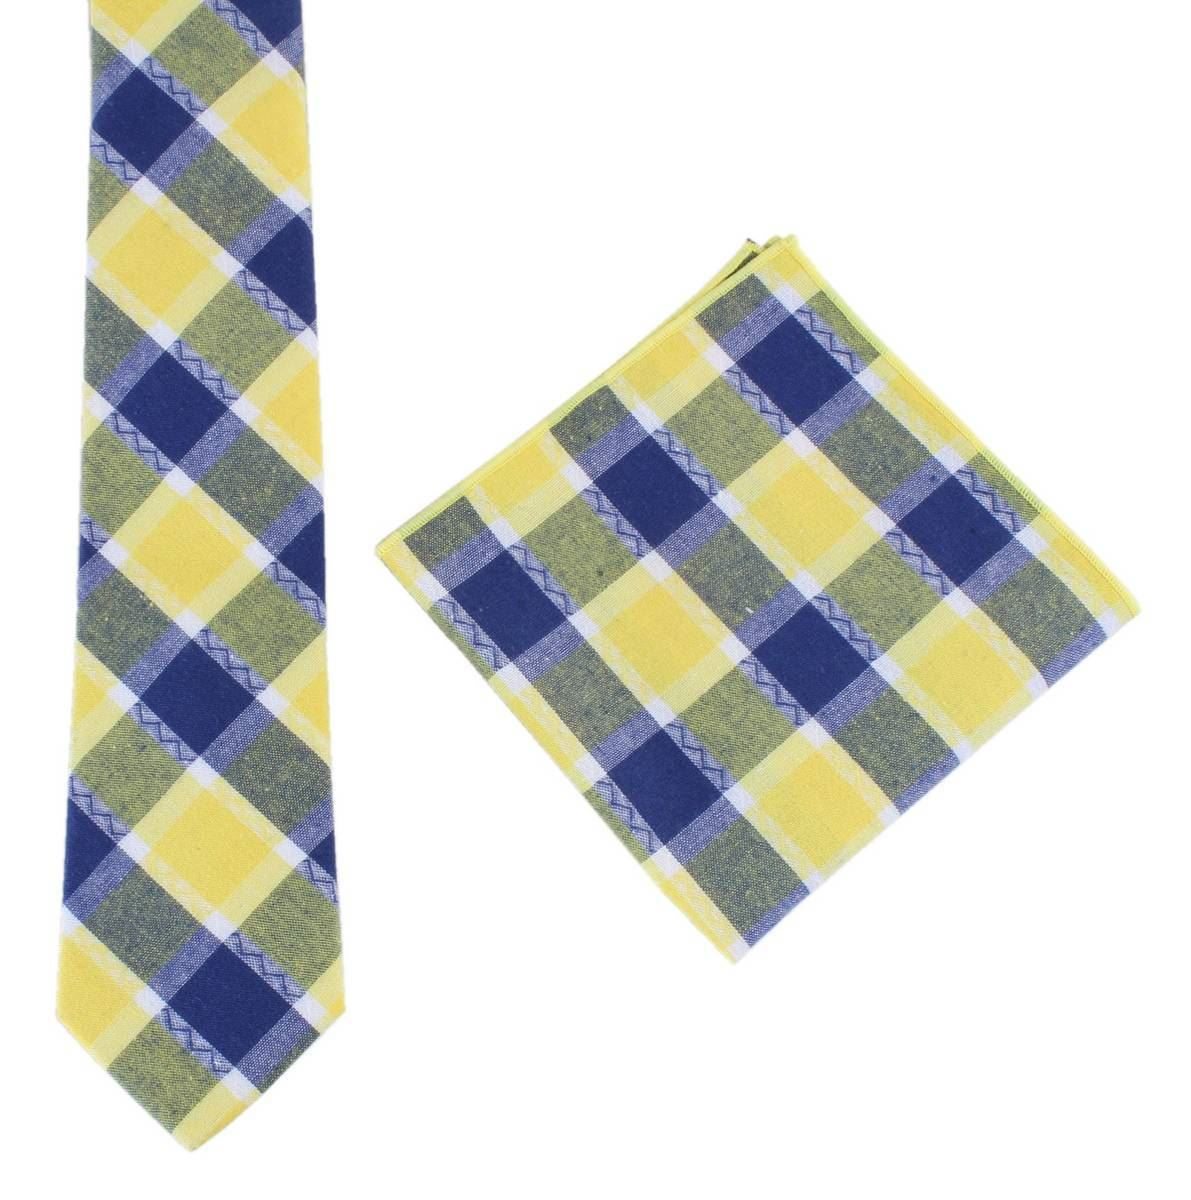 c675b814c490 Knightsbridge Neckwear Mens Check Tie and Pocket Square set - Yellow/Navy